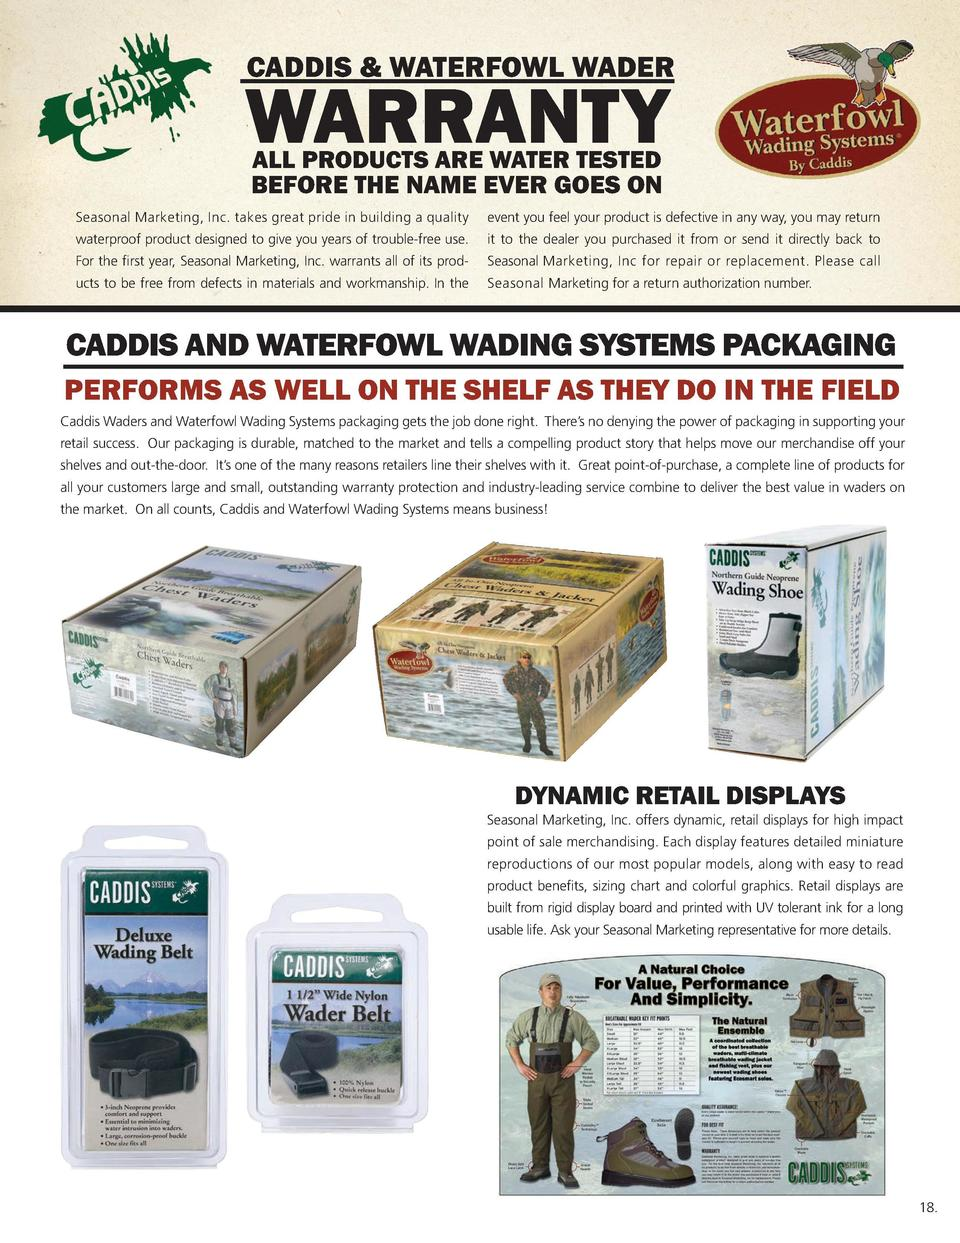 Caddis   Waterfowl Wader  KEY FIT POINTS Men   s Breathable Stockingfoot wader Key Fit Points FOR APPROXIMATE FIT  Caddis ...